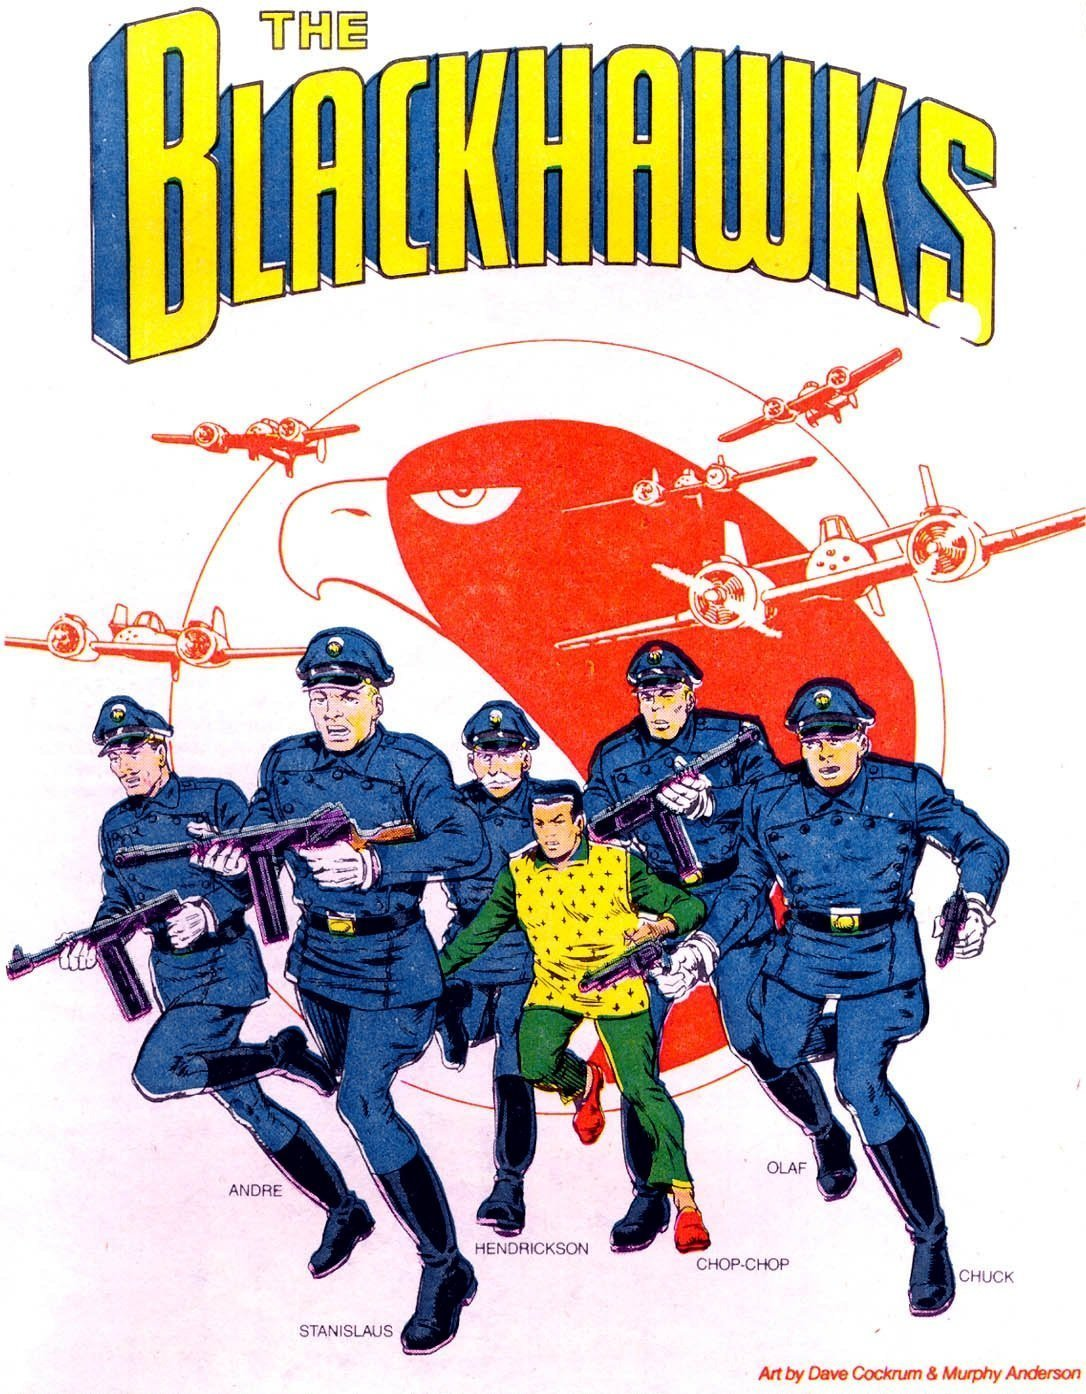 Couverture du comic DC The Blackhawks par Dave Cockrum et Murphy Anderson